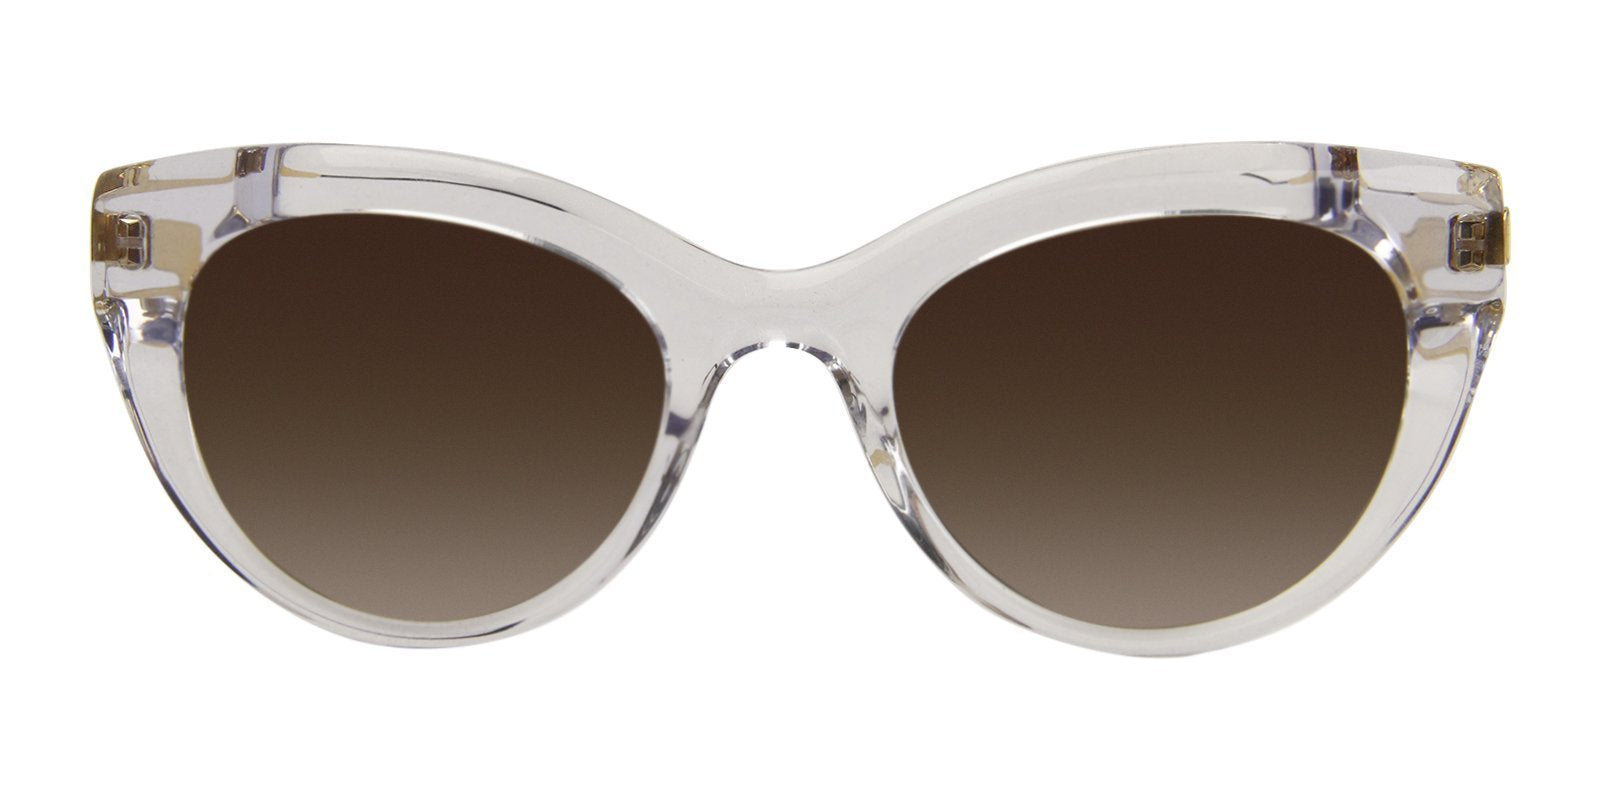 Thierry Lasry - Diamondy Clear Cat-Eye Women Sunglasses - 53mm-Sunglasses-Designer Eyes